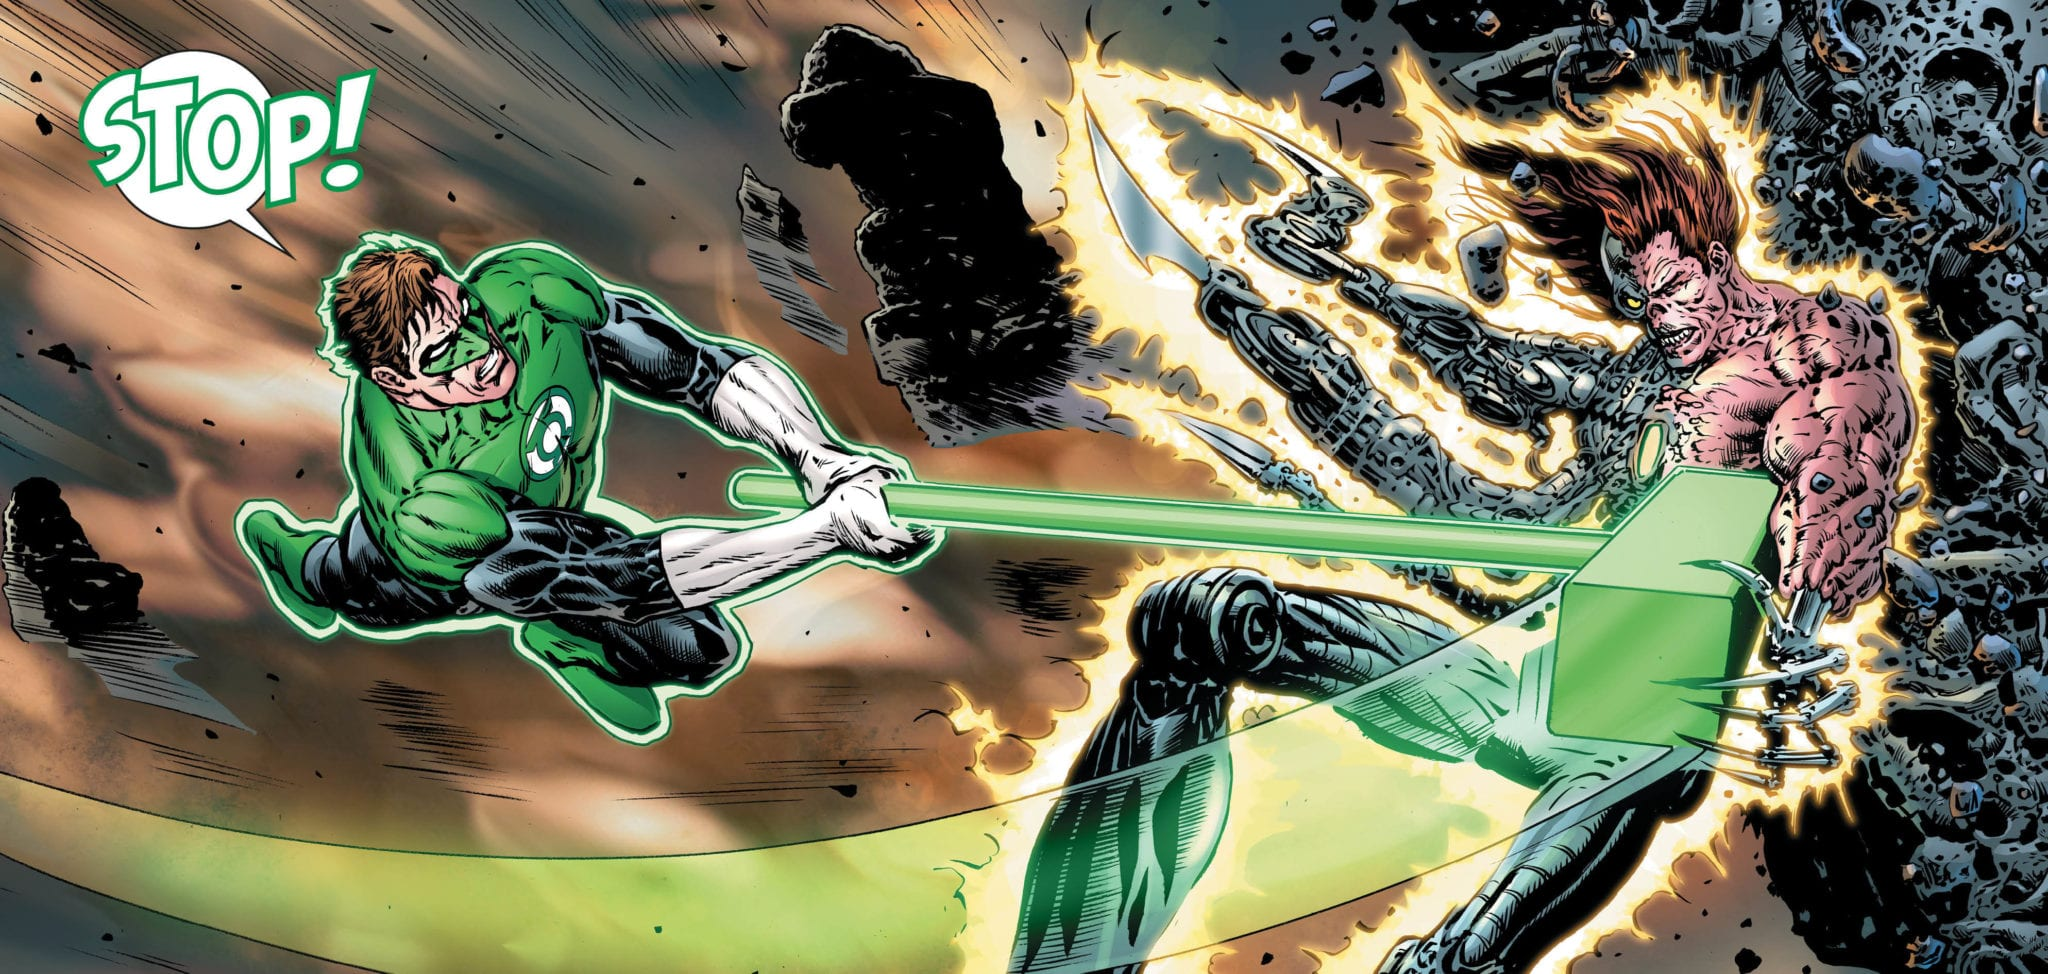 Review: Hal Jordan Fights His Evil Counterpart in THE GREEN LANTERN #12 1